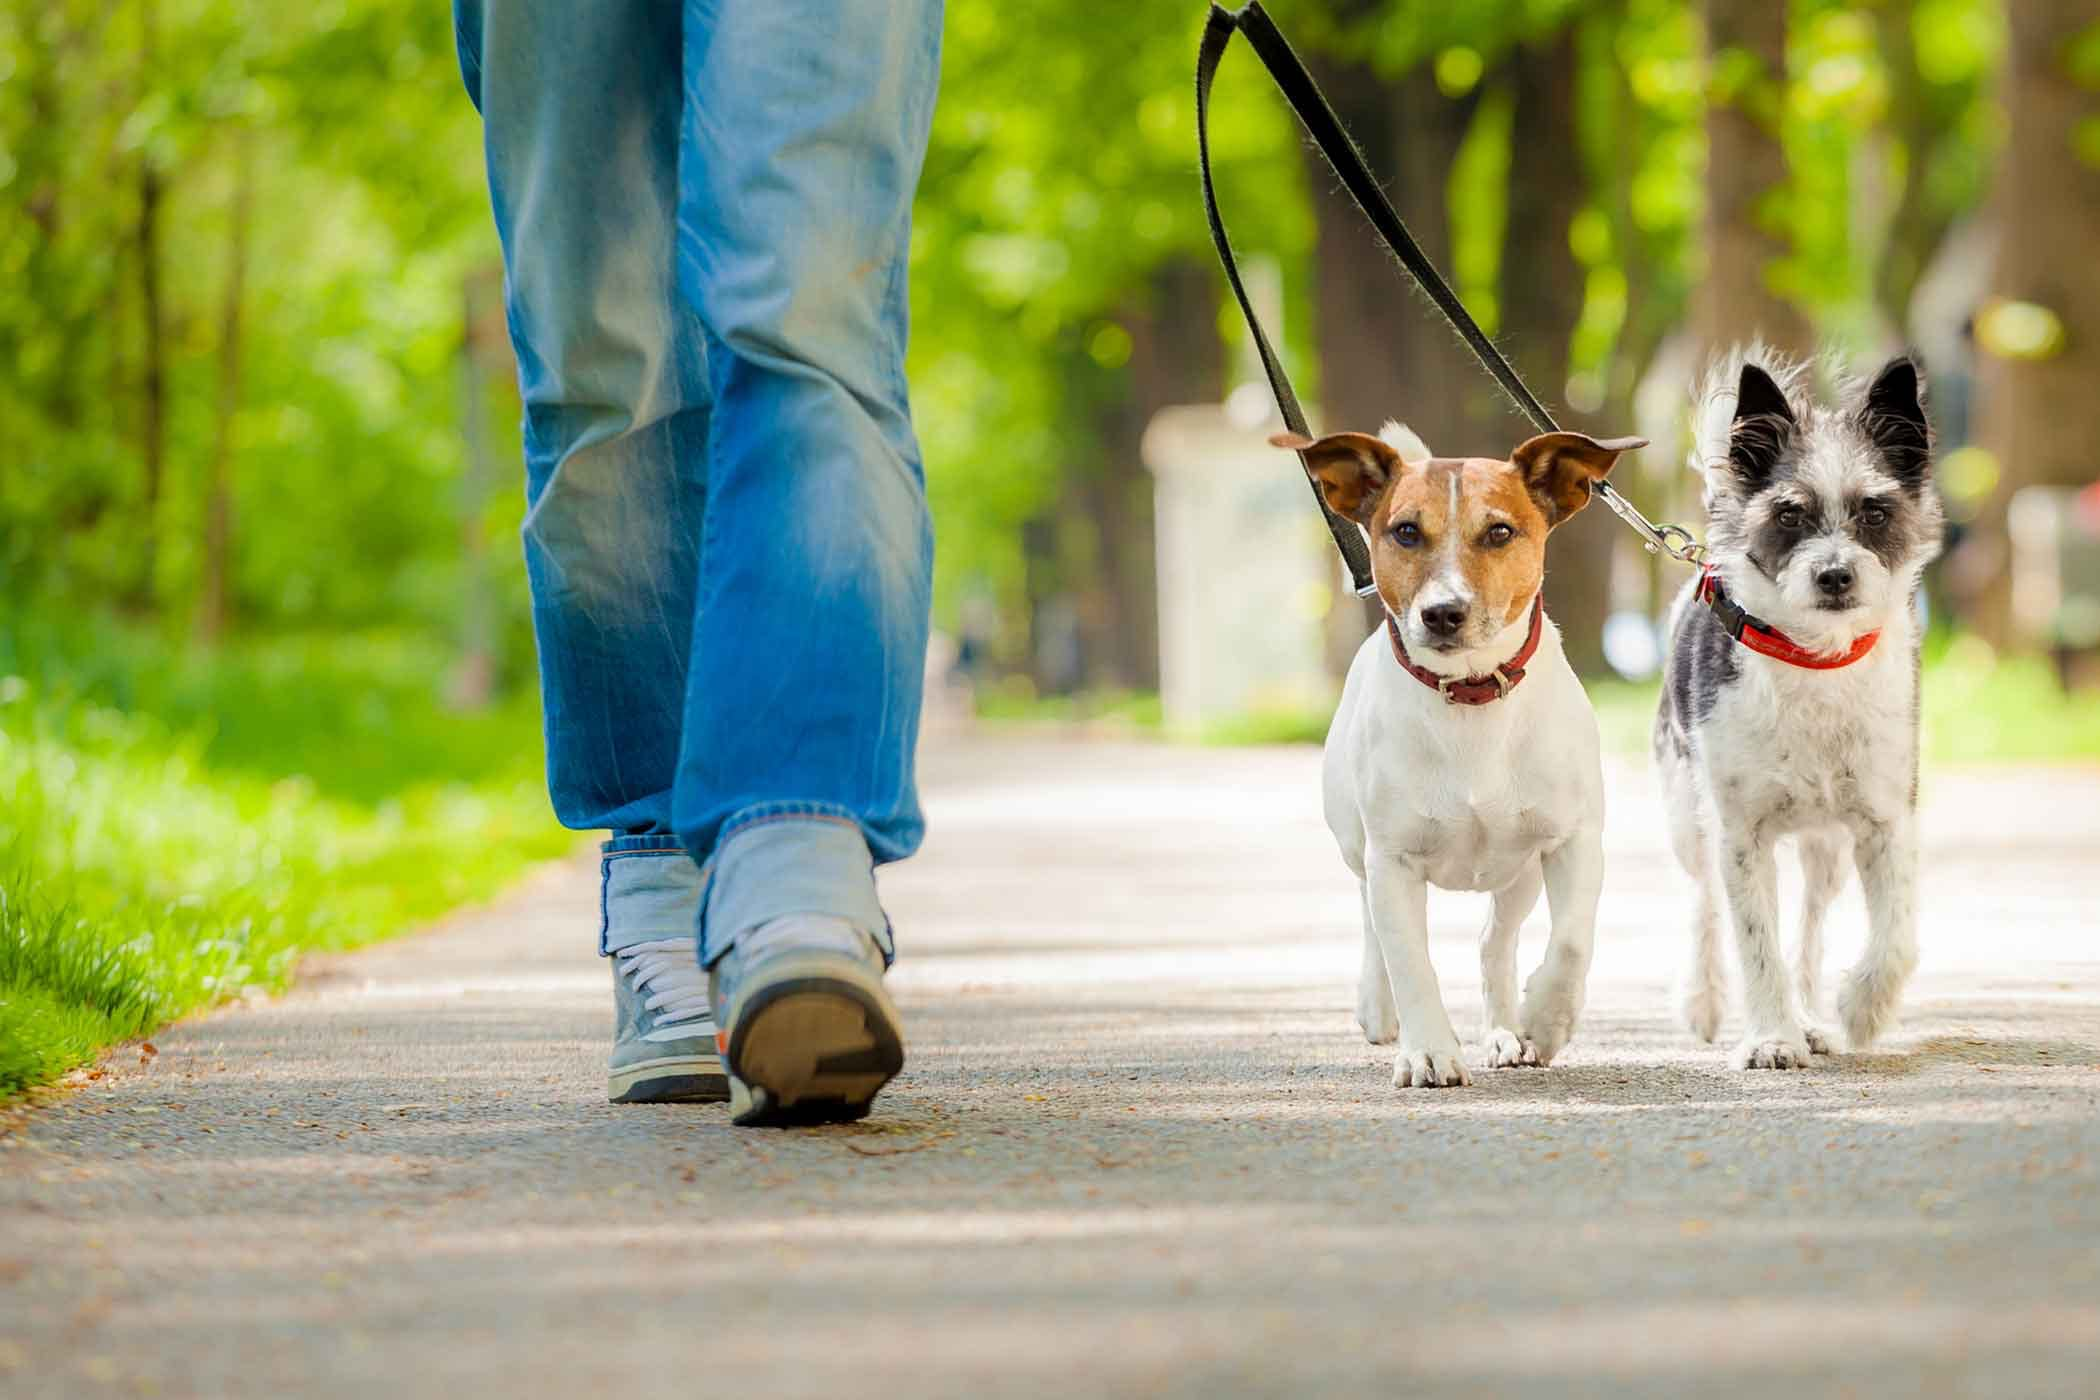 How to Train Your Dog to Walk Slowly | Wag!